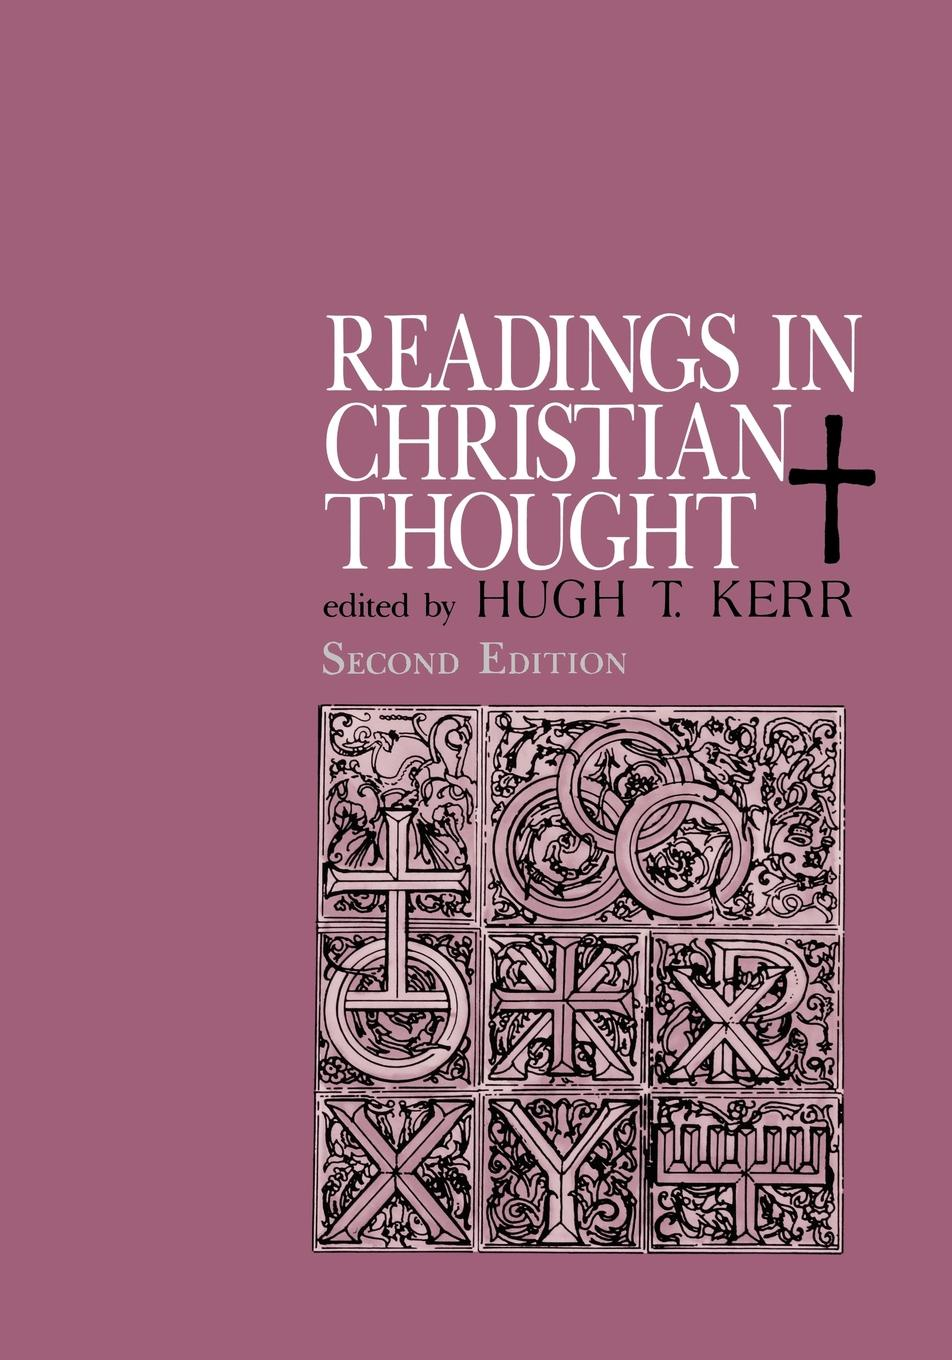 лучшая цена H. Kerr Readings in Christian Thought (Second Edition)